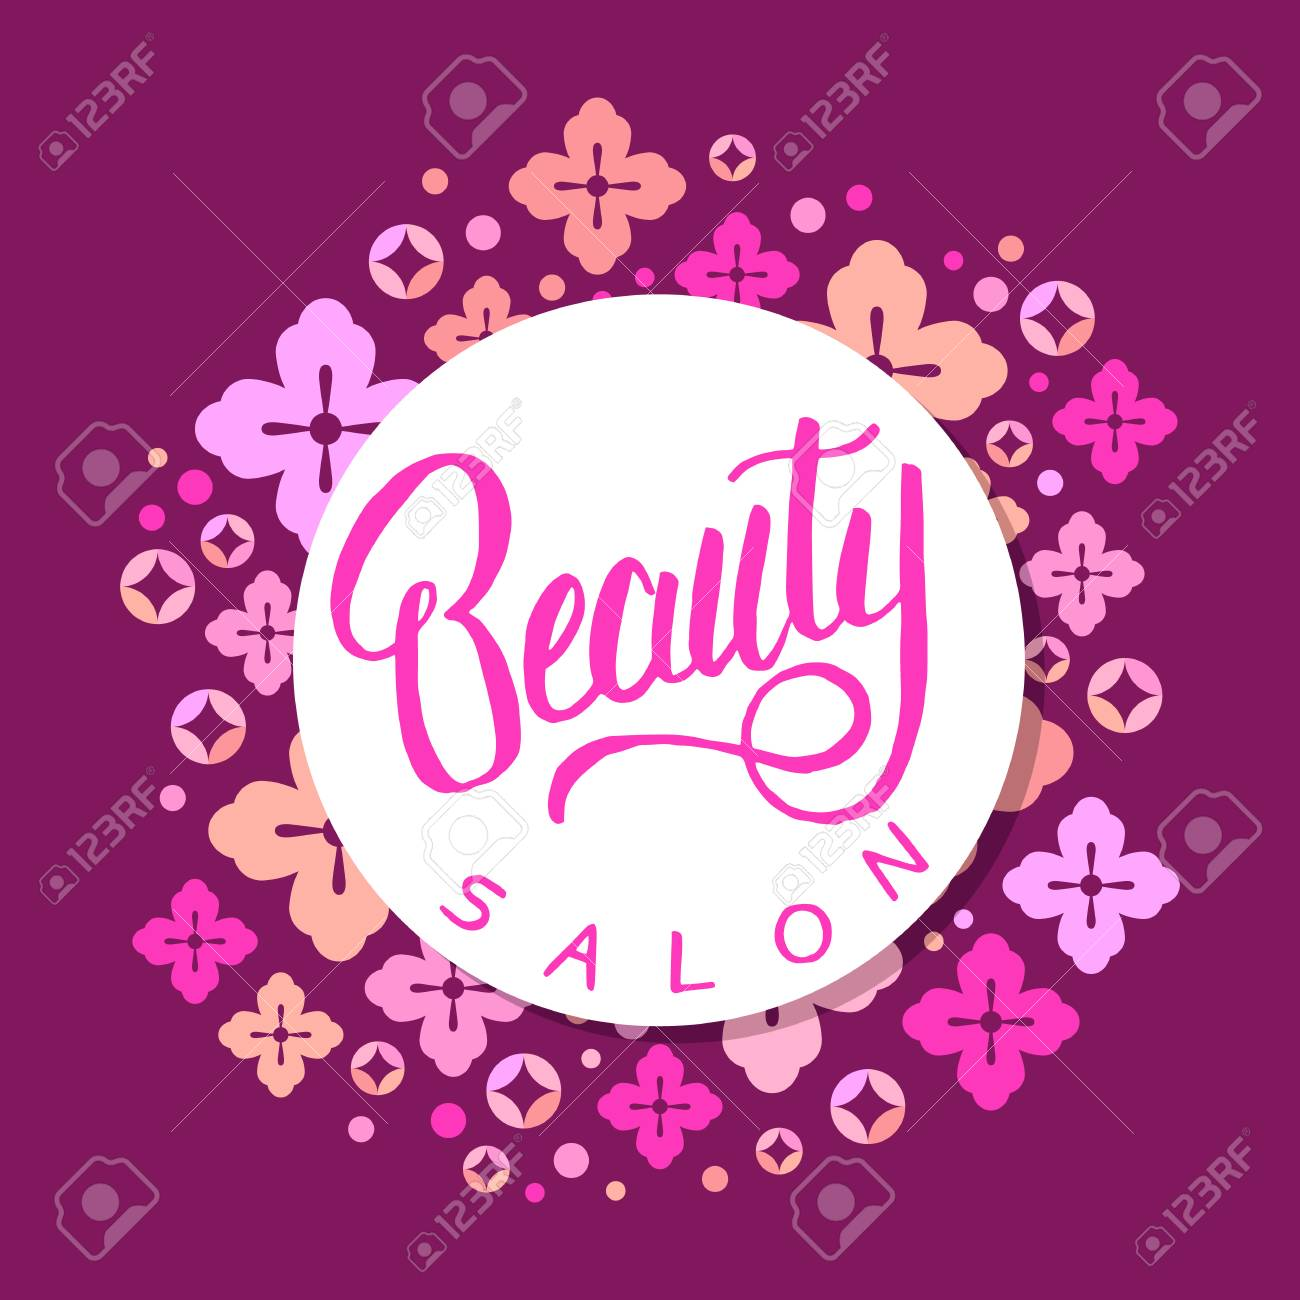 Beauty Salon Banner Hairdresser Badge Cute Background With Royalty Free Cliparts Vectors And Stock Illustration Image 100957738